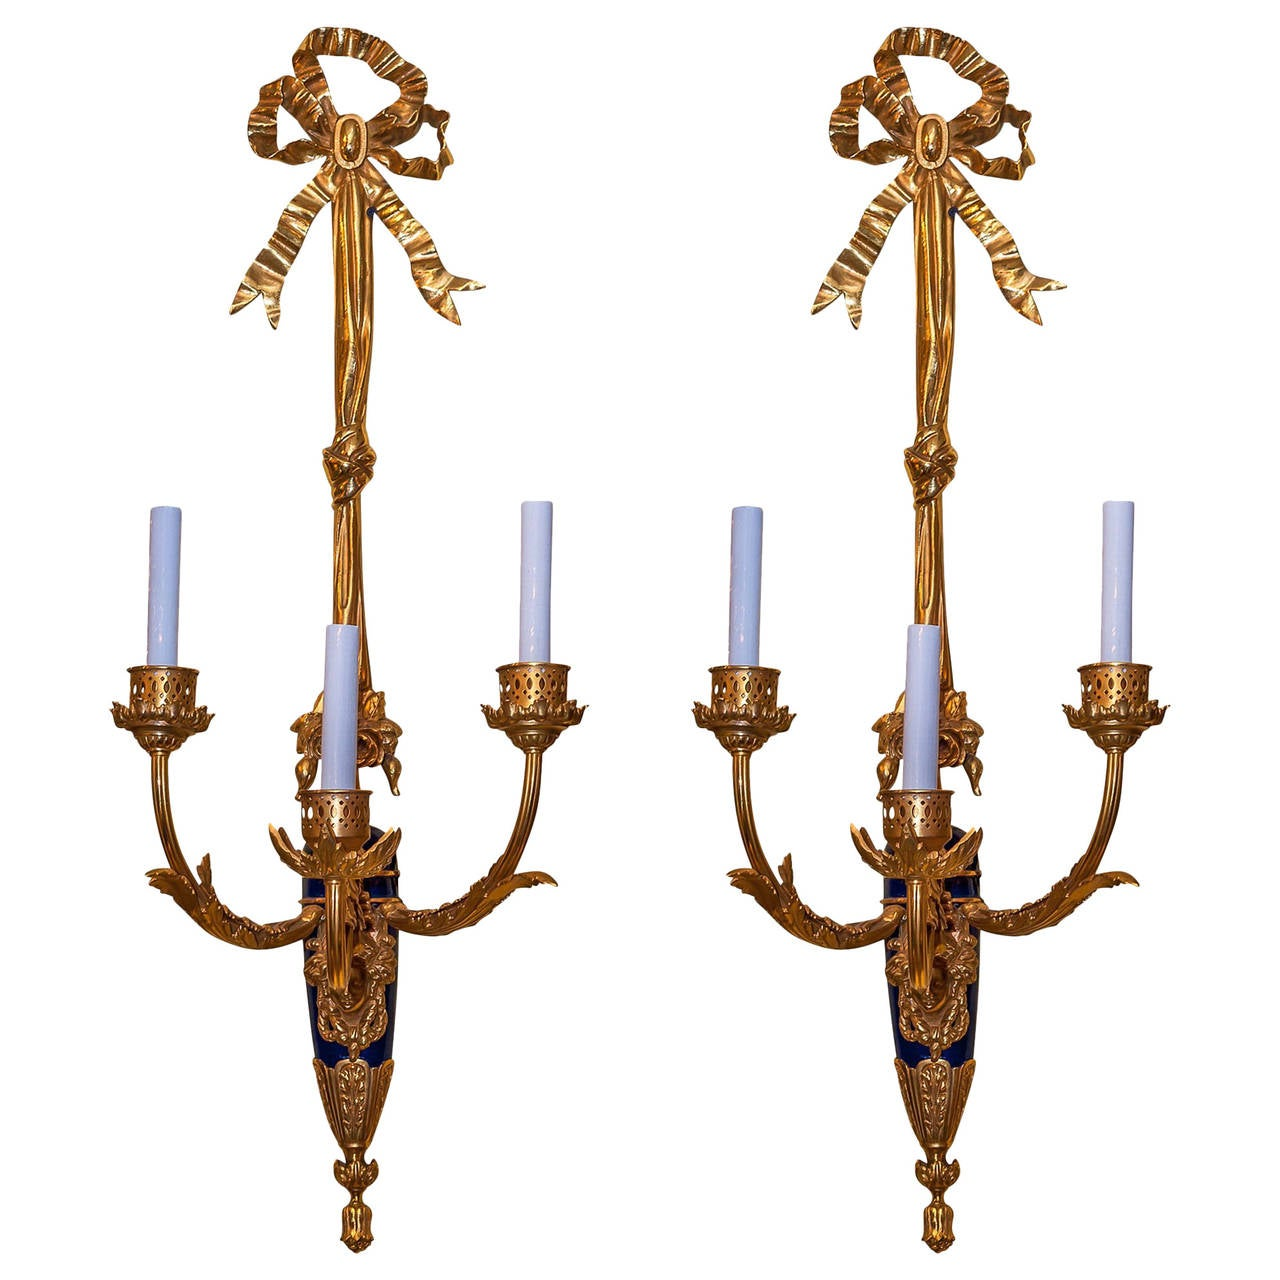 Antique Pair of Gilt Bronze and Blue Three-Arm Wall Light Sconces For Sale at 1stdibs